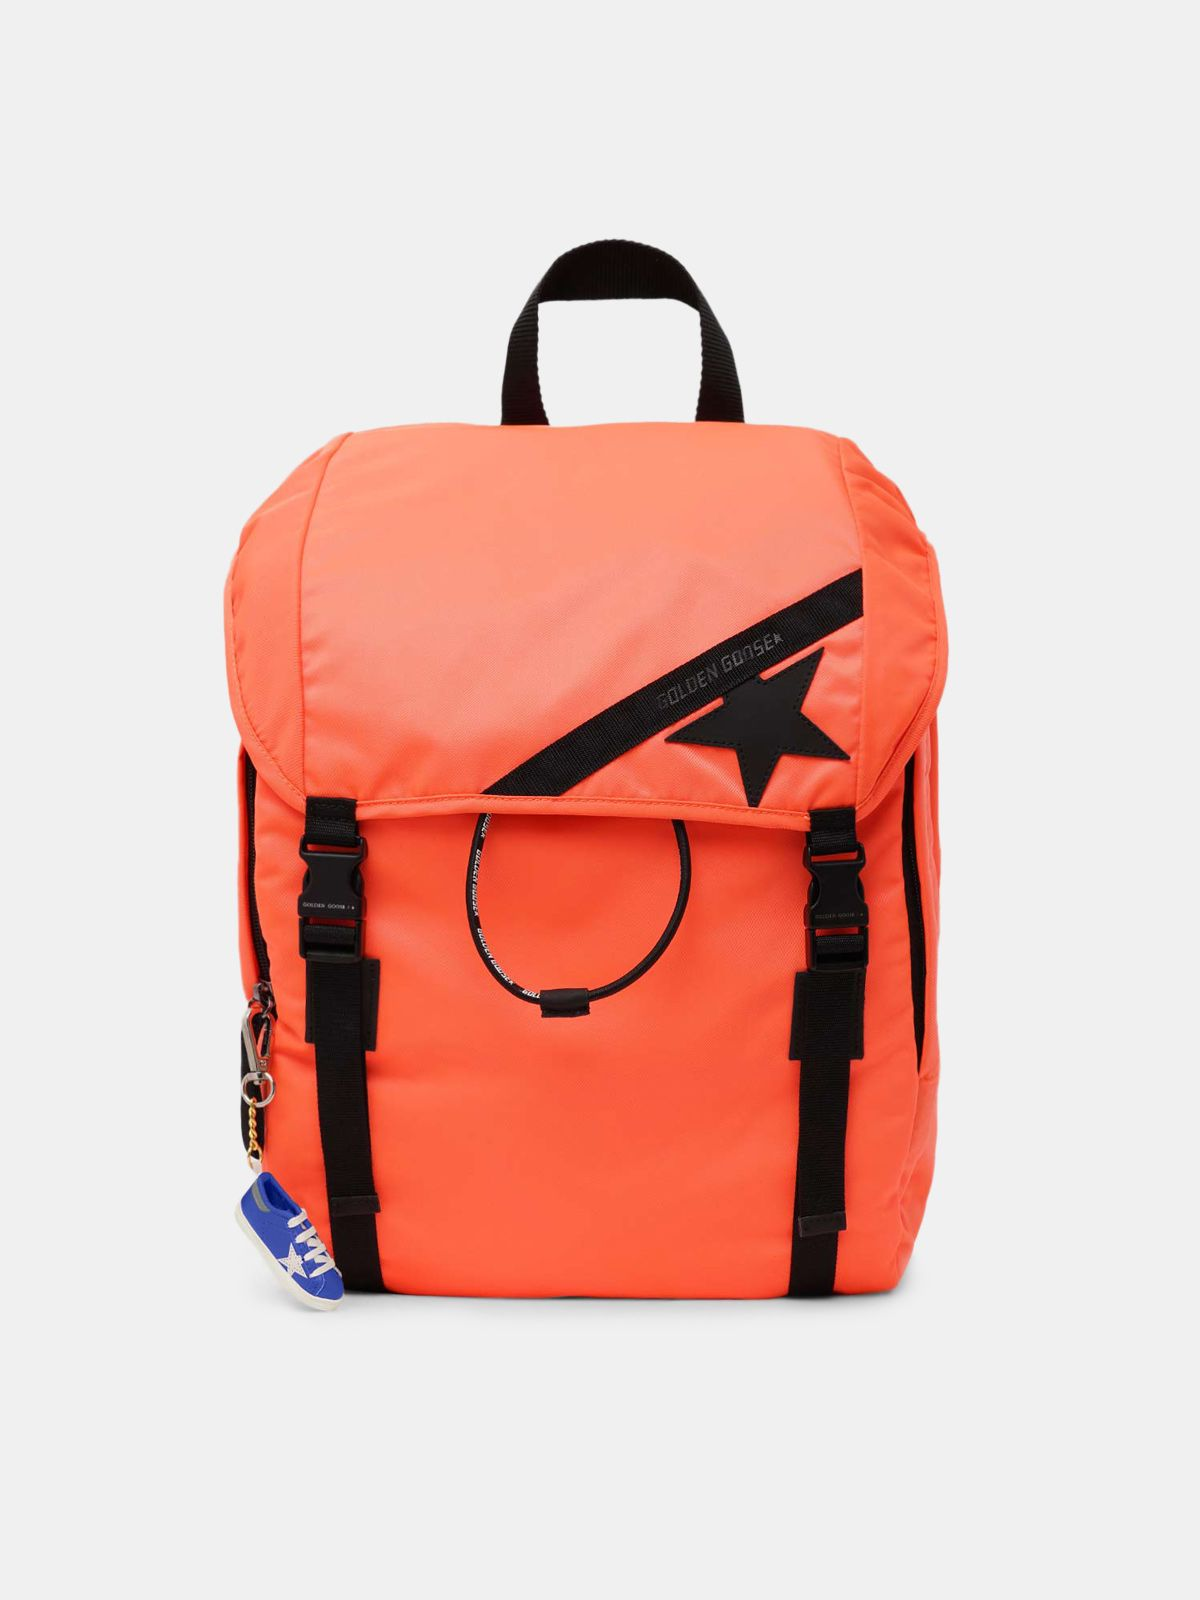 Fluorescent orange nylon Journey backpack